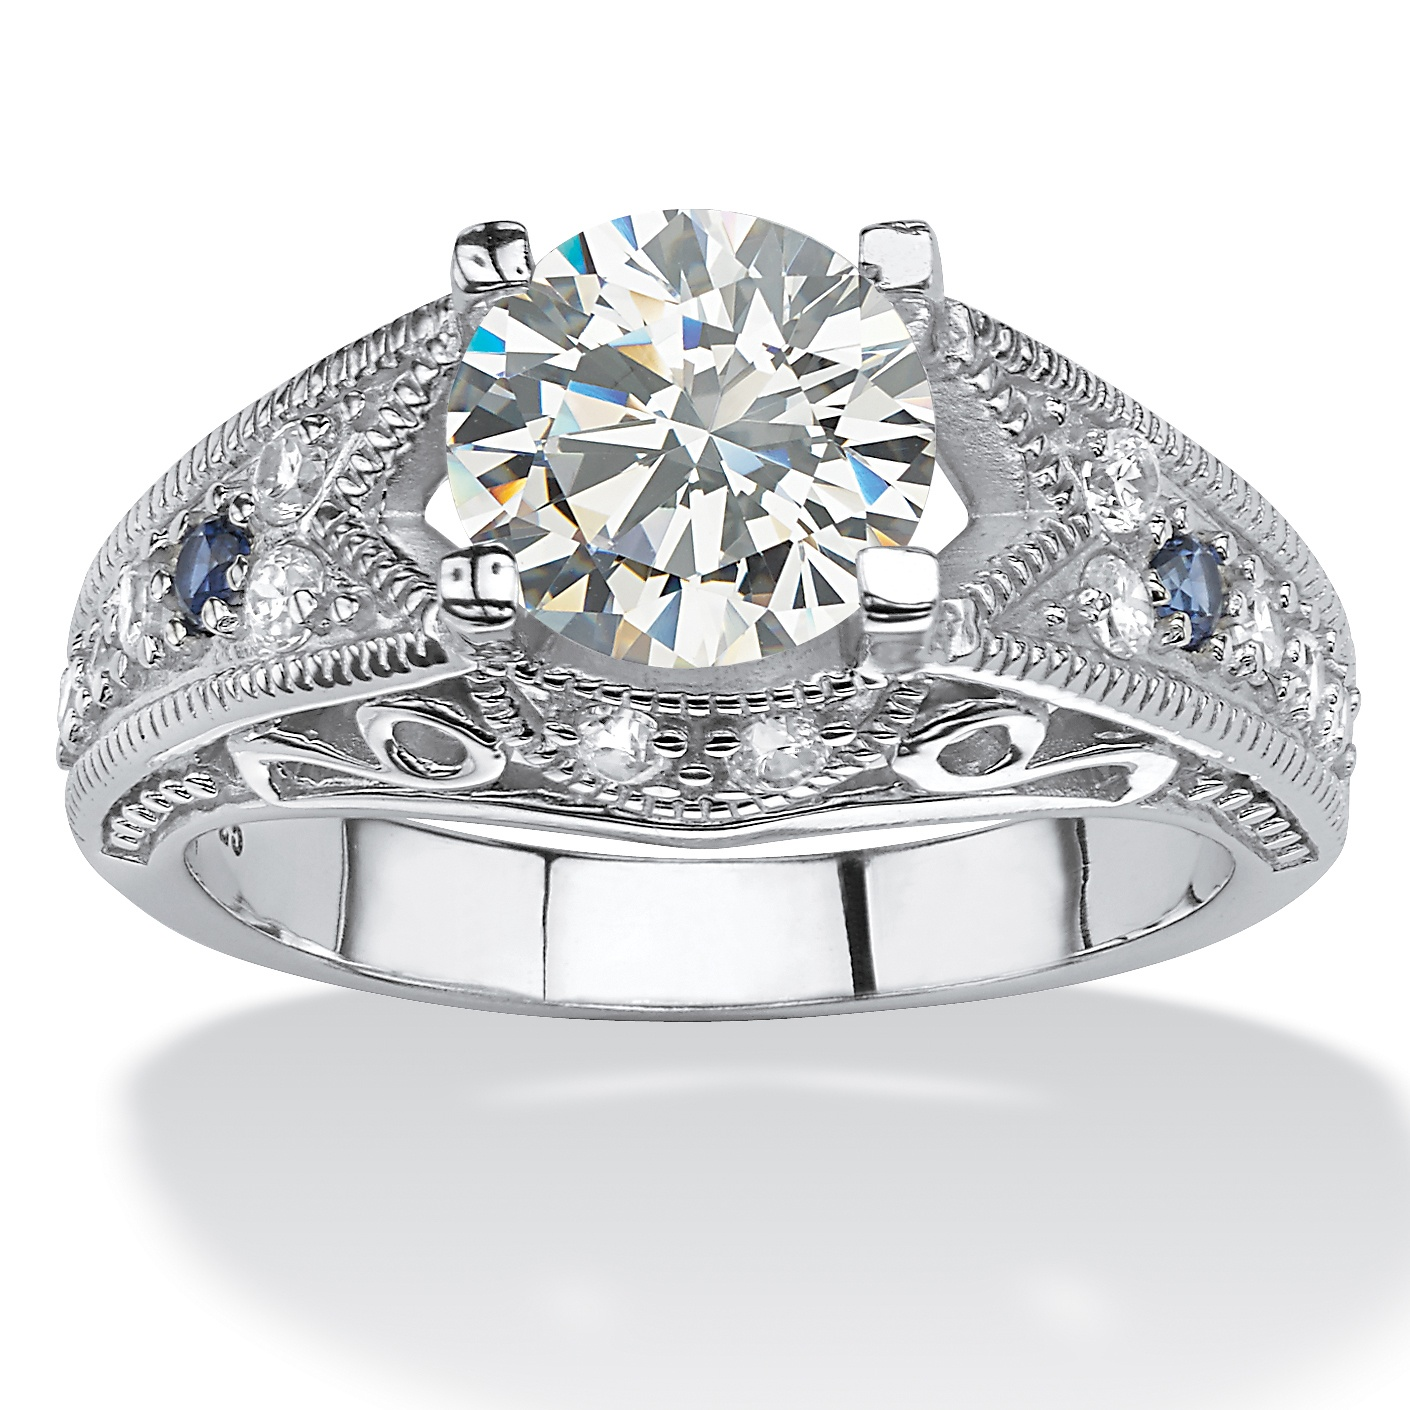 2.45 TCW Round Cubic Zirconia Miligrain Ring in Platinum over Sterling Silver